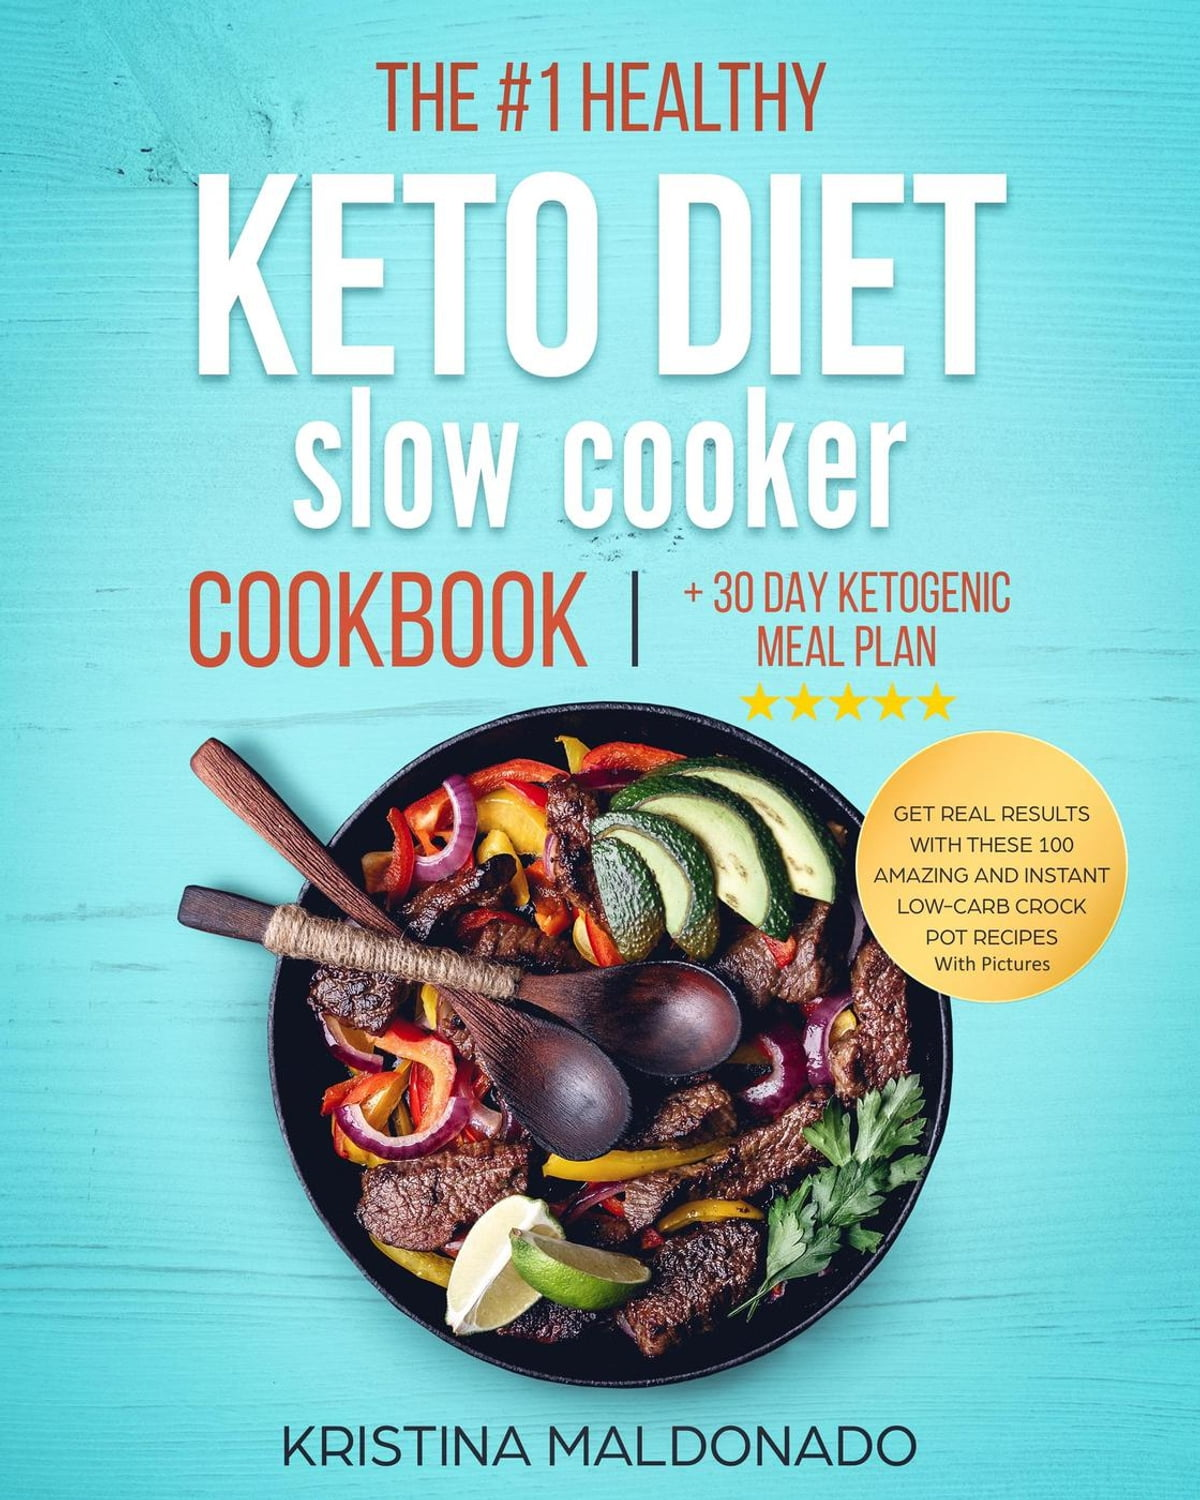 The 1 Healthy Keto Diet Slow Cooker Cookbook 30 Day Ketogenic Meal Plan Get Real Results With These 100 Amazing And Instant Low Carb Crock Pot Recipes With Pictures Healthy One Pot Meals